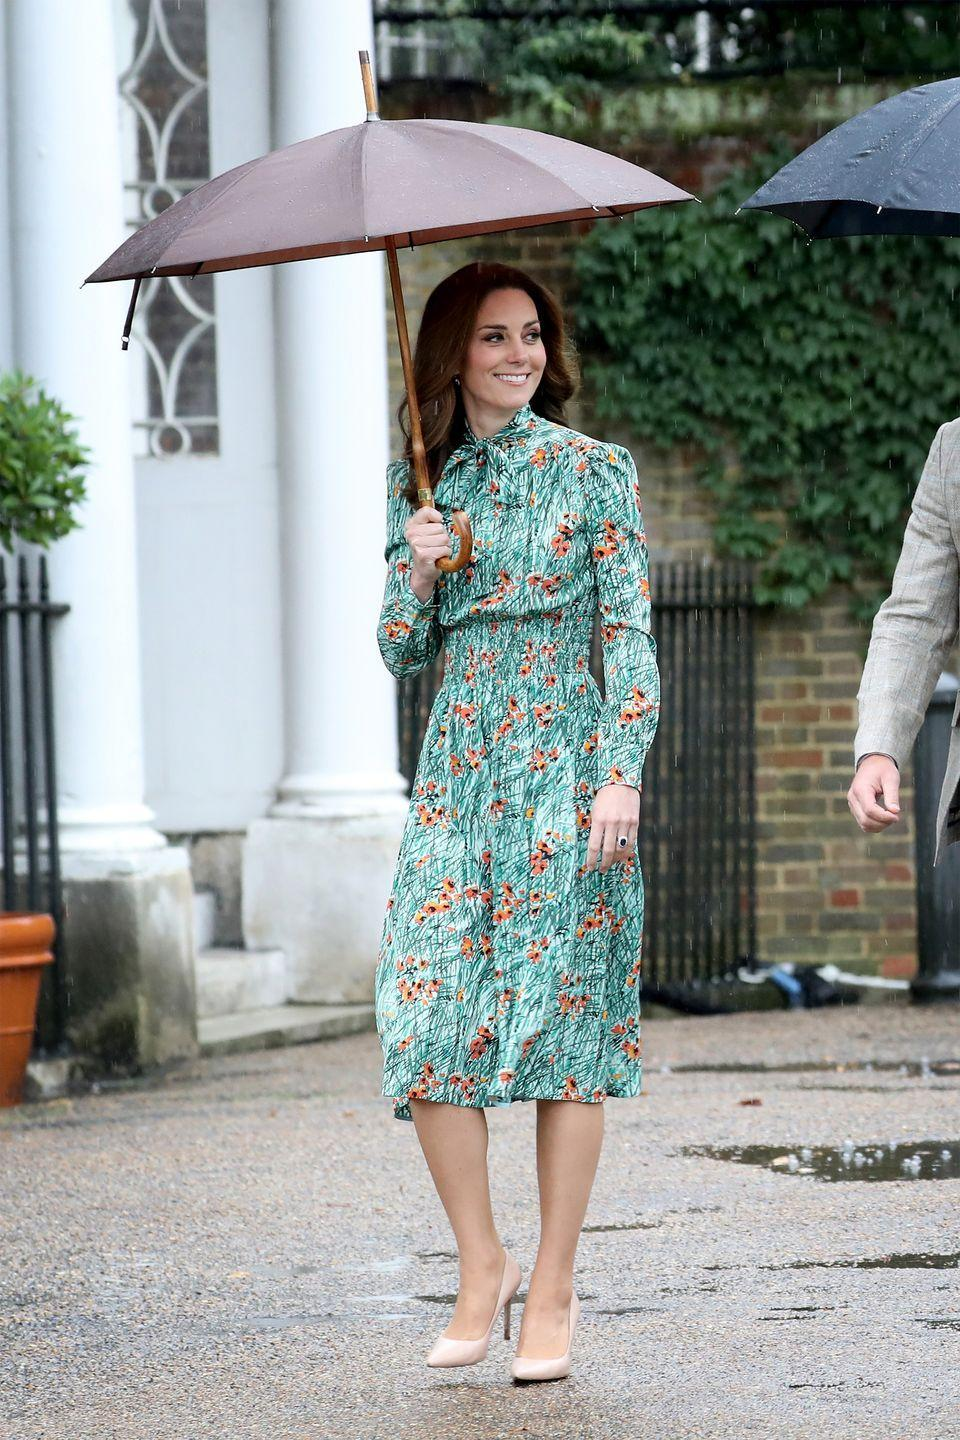 """<p>The Duchess wears a Poppy-print floral pussybow dress by Prada with nude pumps during a rainy visit to the White Garden at Kensington Palace, which is now dedicated to Princess Diana. <a class=""""link rapid-noclick-resp"""" href=""""https://go.redirectingat.com?id=74968X1596630&url=http%3A%2F%2Fwww.matchesfashion.com%2Fus%2Fproducts%2F1154375&sref=https%3A%2F%2Fwww.harpersbazaar.com%2Ffashion%2Ftrends%2Fg1811%2Fkate-middleton-outfits%2F"""" rel=""""nofollow noopener"""" target=""""_blank"""" data-ylk=""""slk:SHOP"""">SHOP</a></p>"""